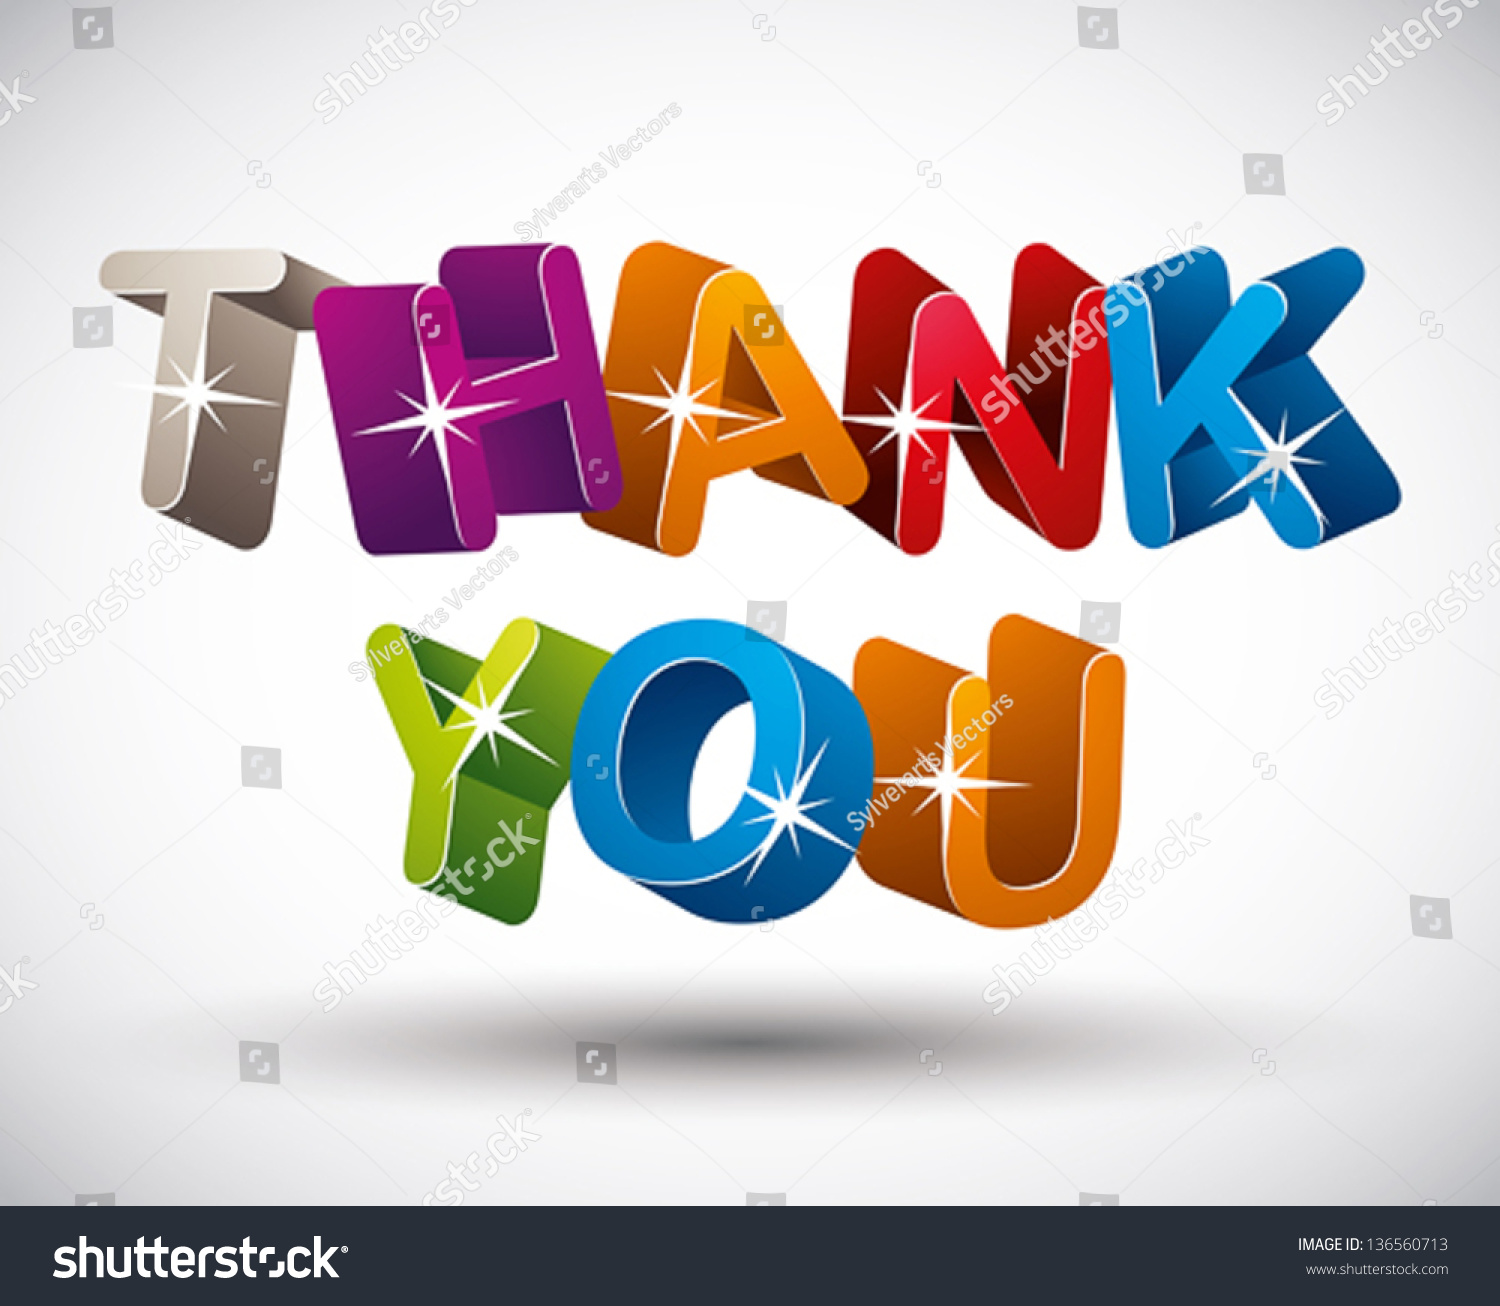 thank you lettering made d colorful stock vector  thank you lettering made 3d colorful letters isolated on white background vector